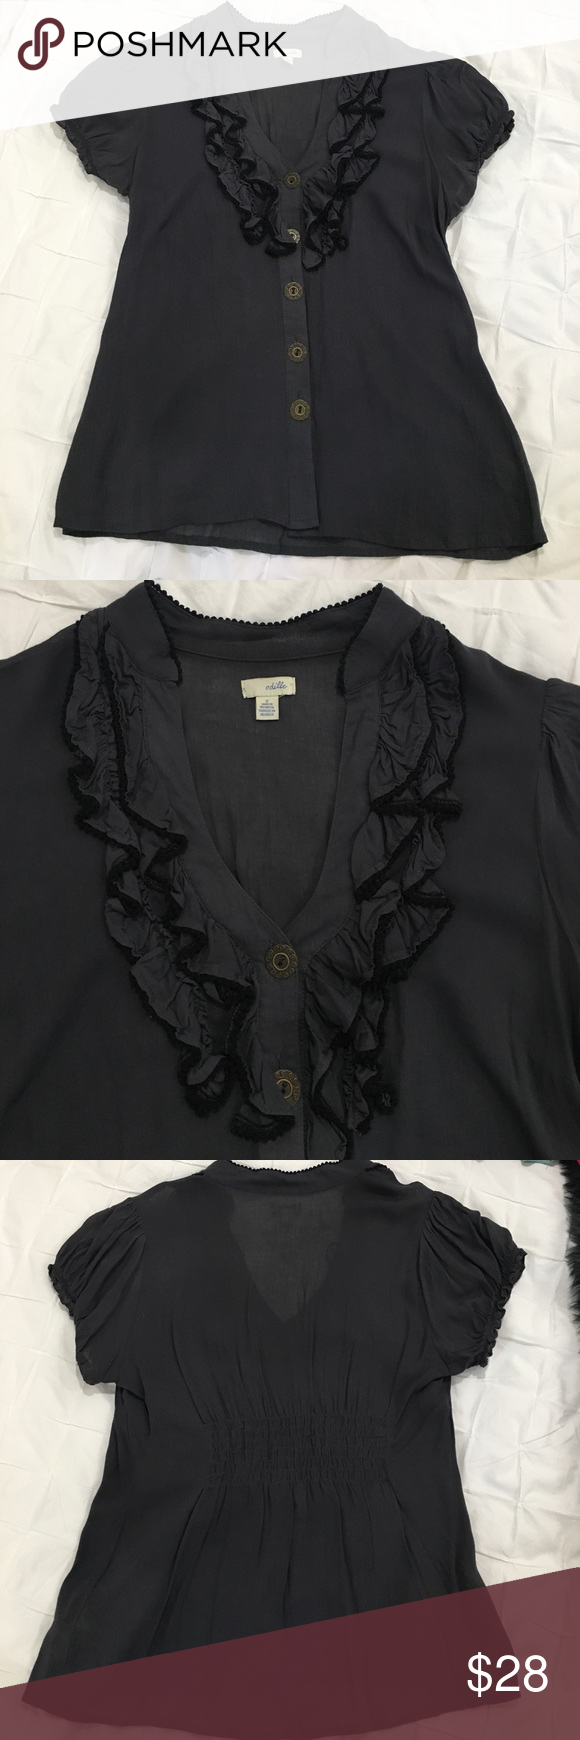 Anthropologie ✨ Ruffle Top Gray V-neck Top from Anthropologie. Ruffles around the neck with black trim and gold buttons up the front. Good condition! Anthropologie Tops Blouses